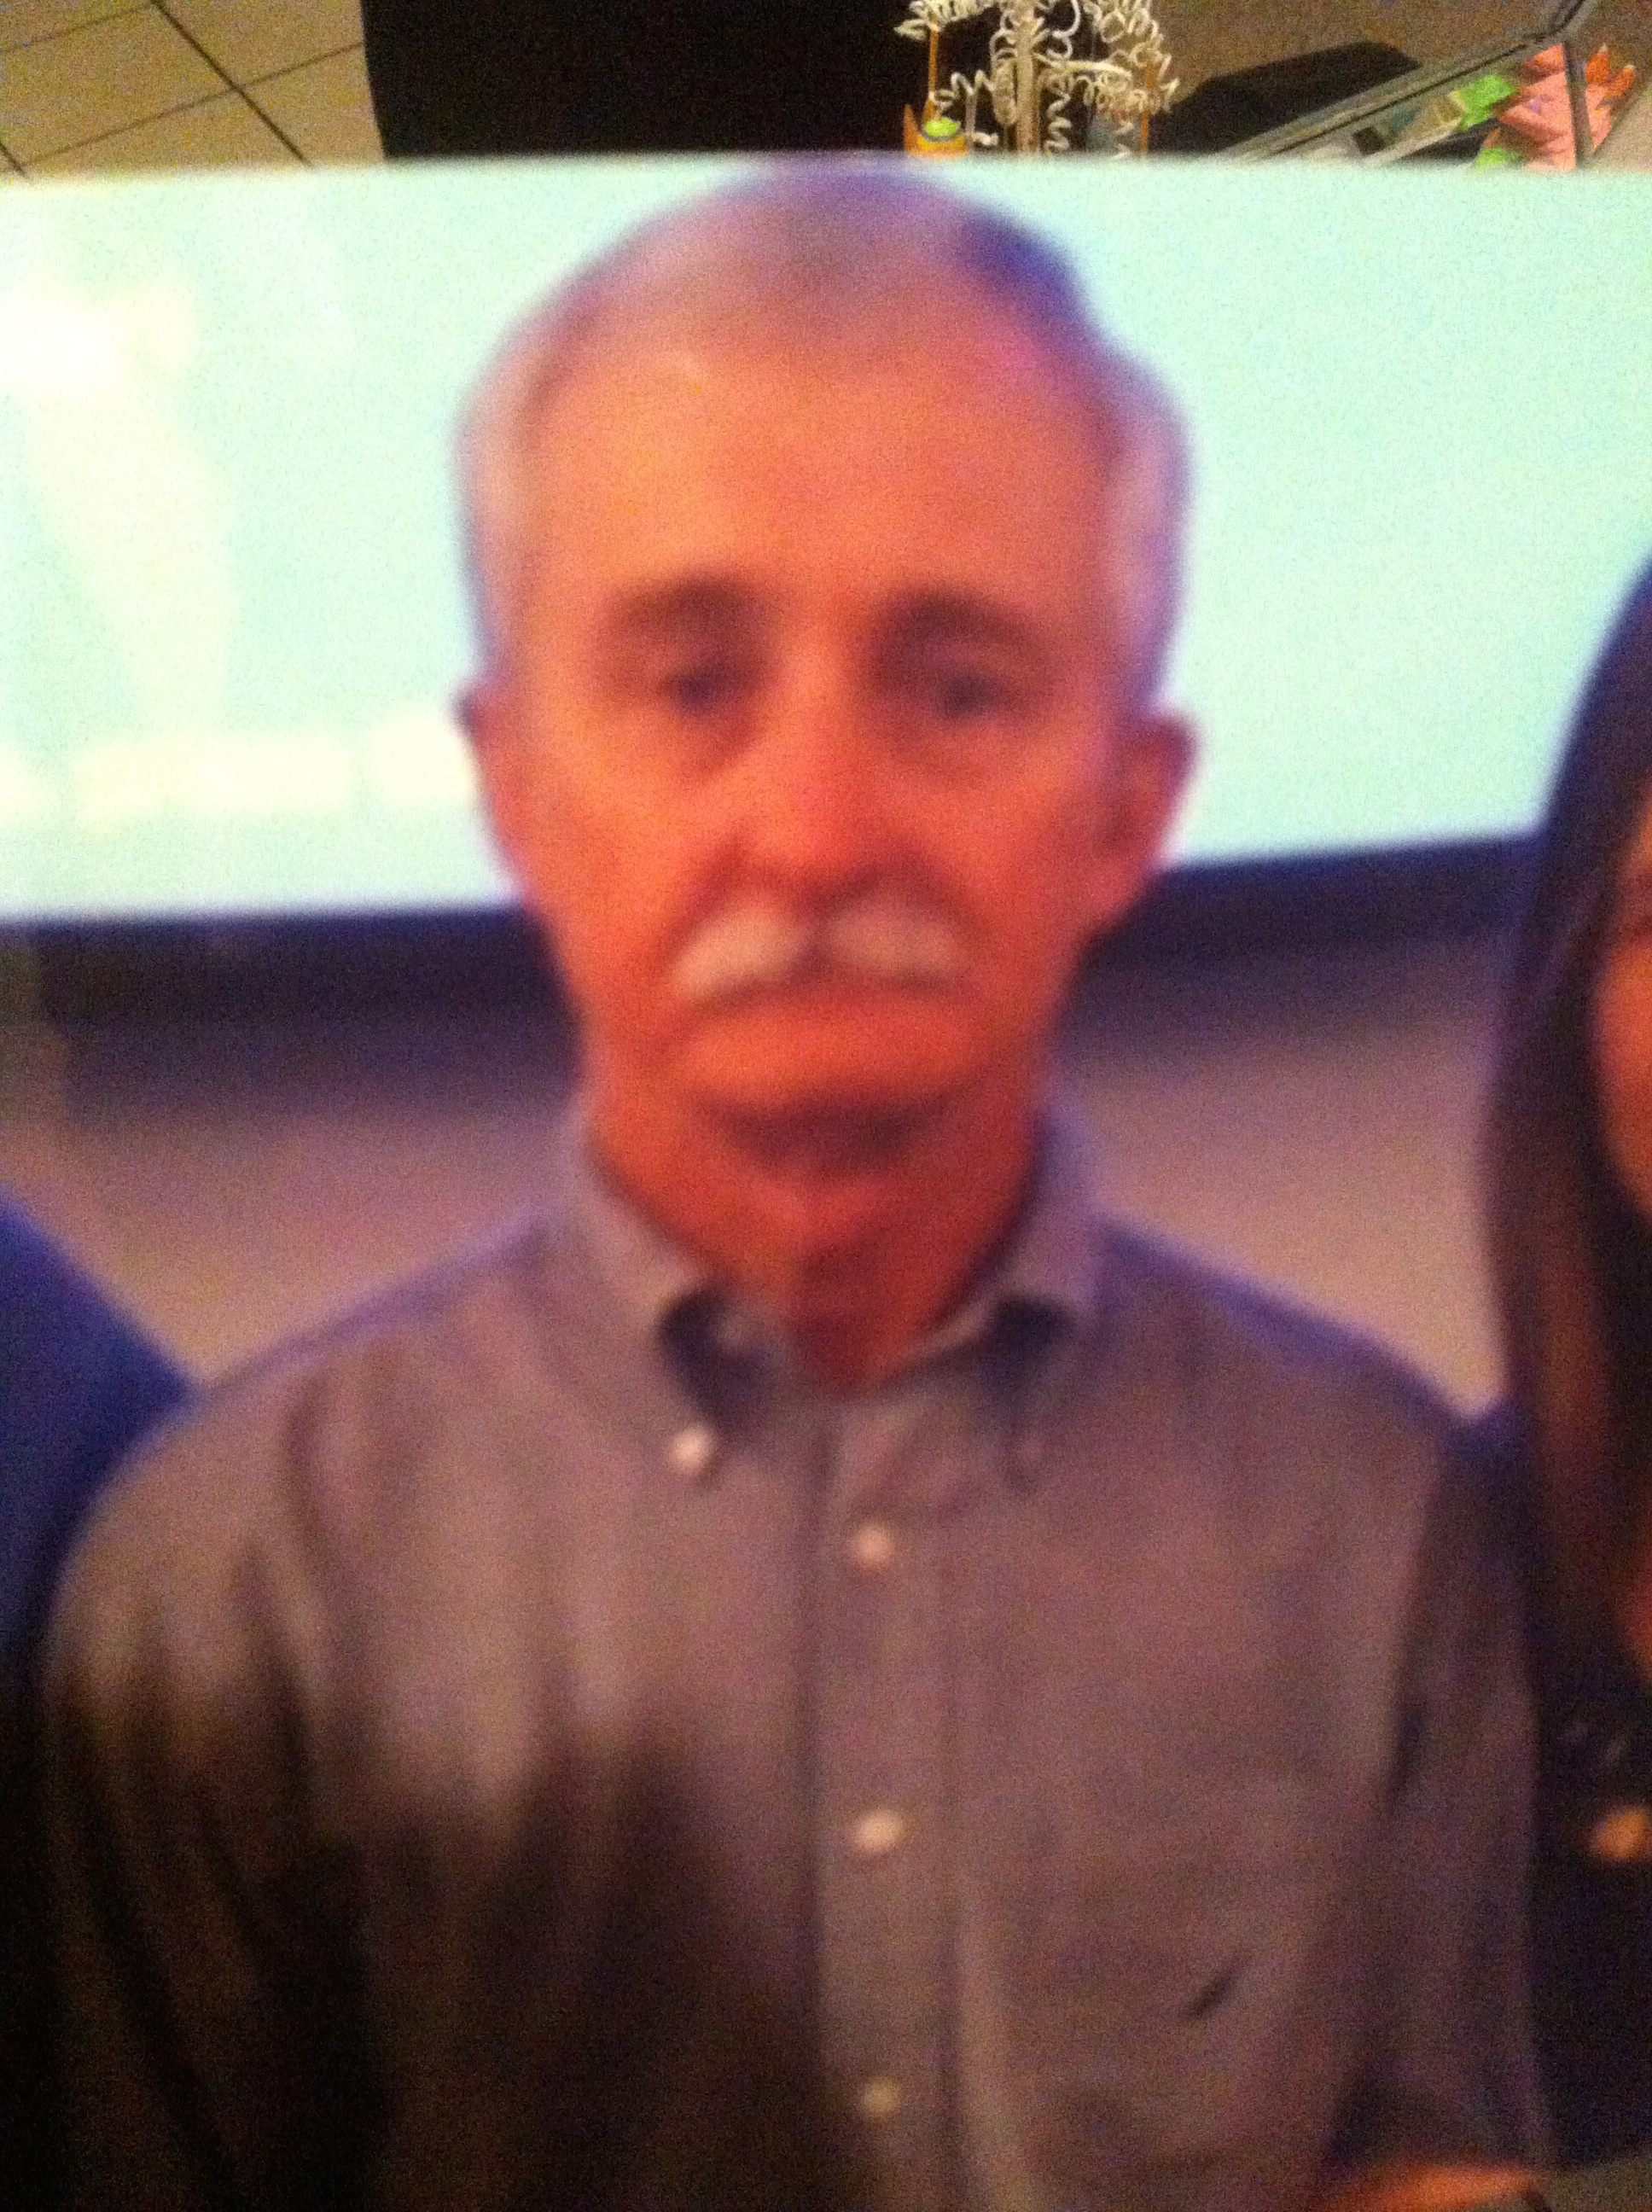 PHOTO: MISSING:David Claude Siwarski of1423 SE 27th Street Cape Coral, FL. (Photo Courtesy of Cape Coral Police Department)